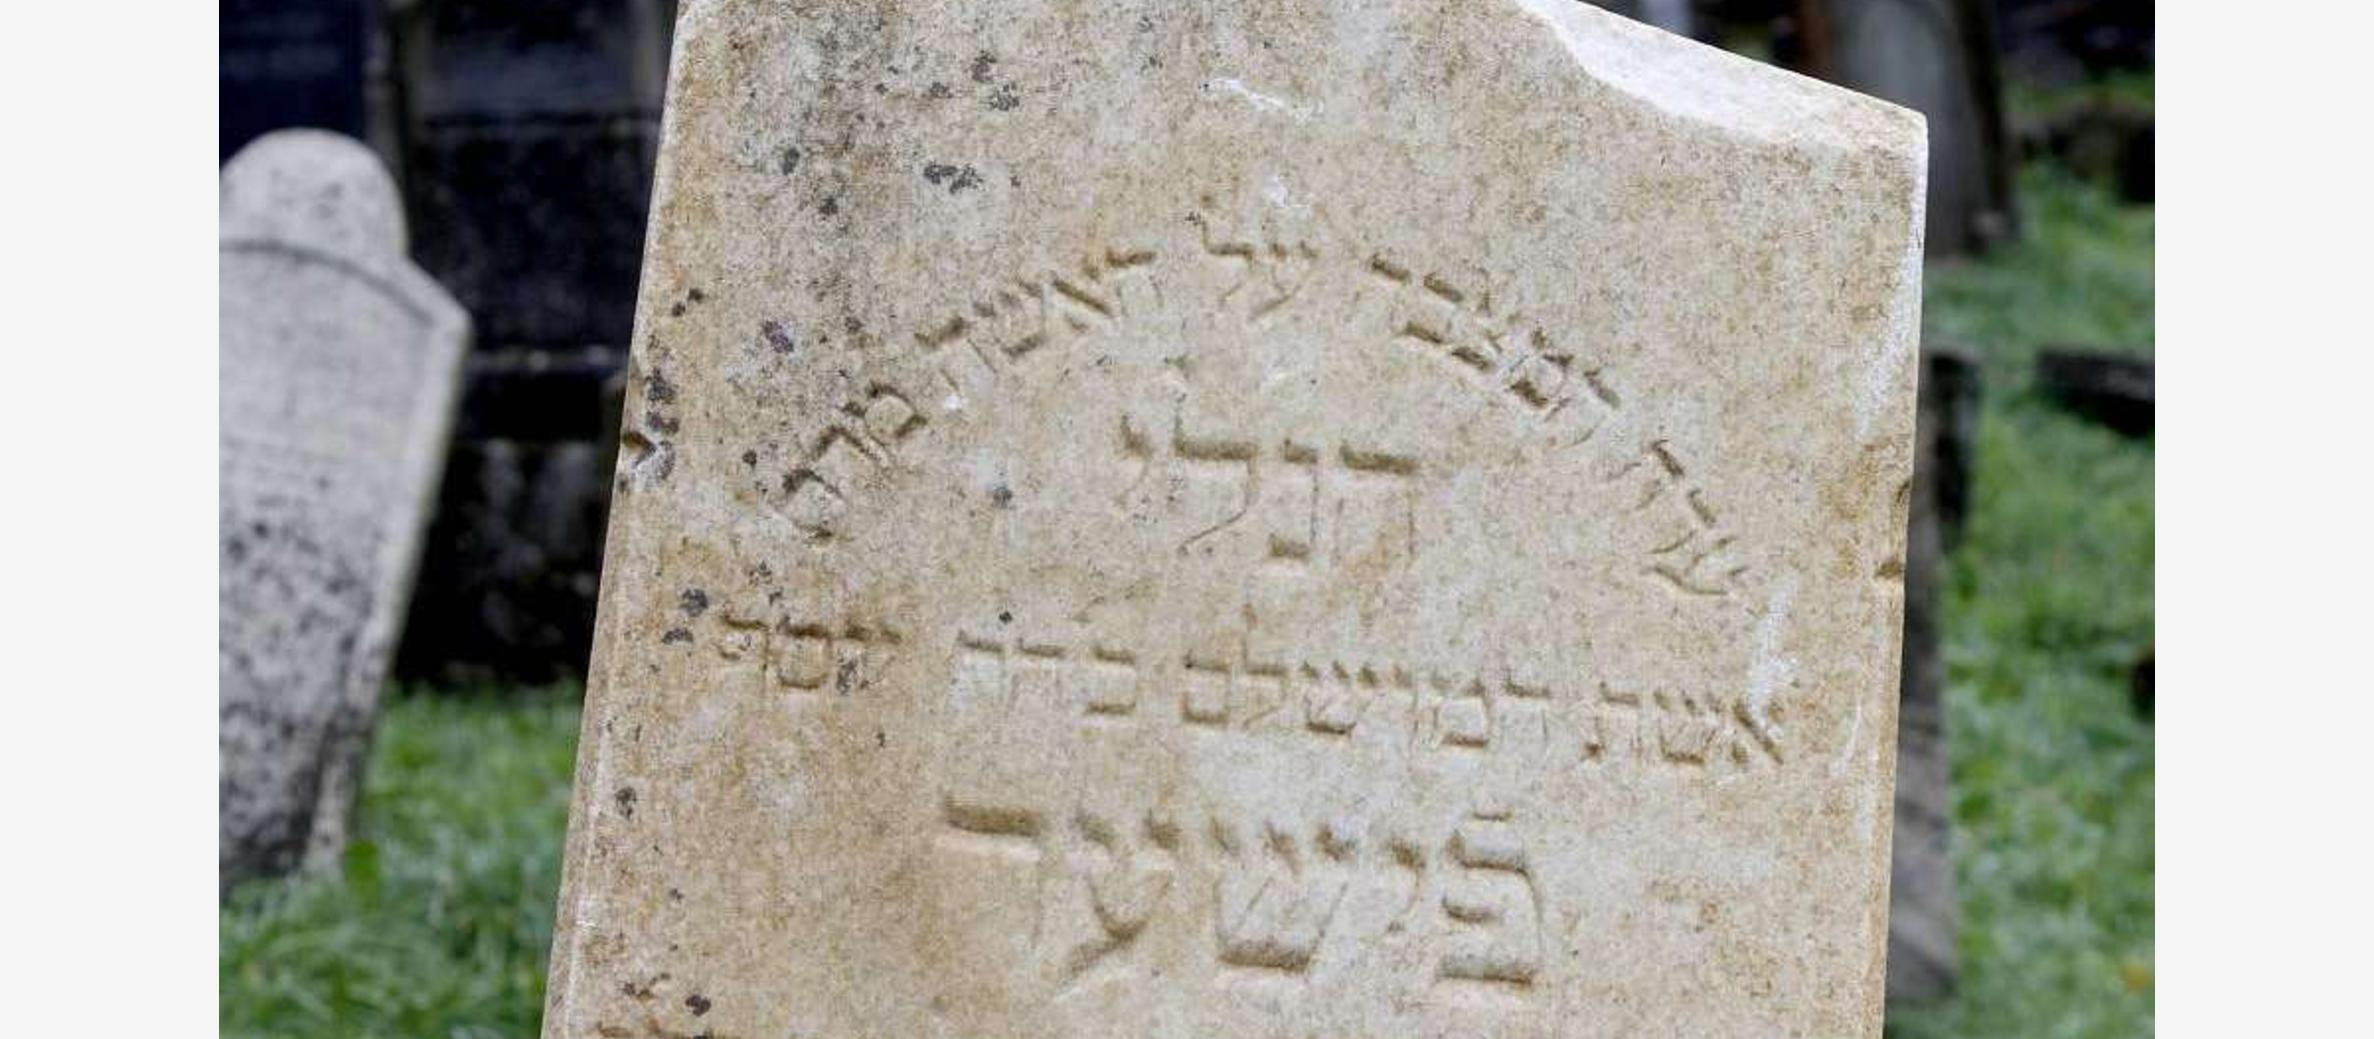 Jewish cemeteries and memorials targeted in spate of anti-Semitism on European continent